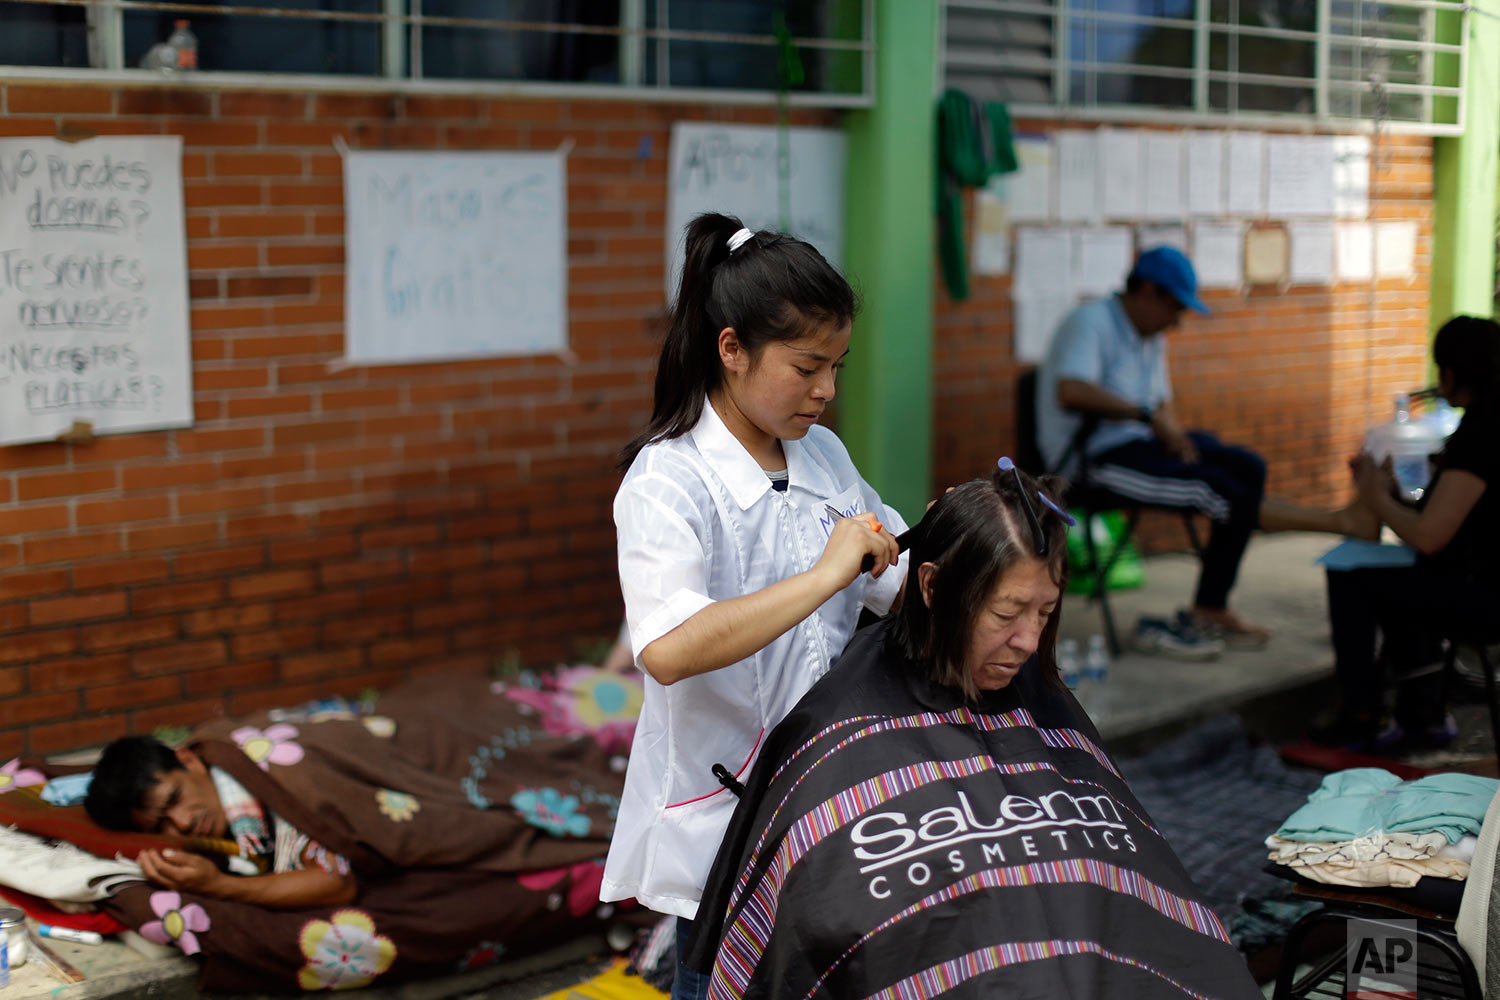 Lidia Benhunmea has her hair done at at the Francisco Kino school, which was turned into a temporary shelter for residents evacuated from the large apartment complex in the Tlalpan neighborhood of Mexico City, Monday, Sept. 25, 2017.   (AP Photo/Natacha Pisarenko)